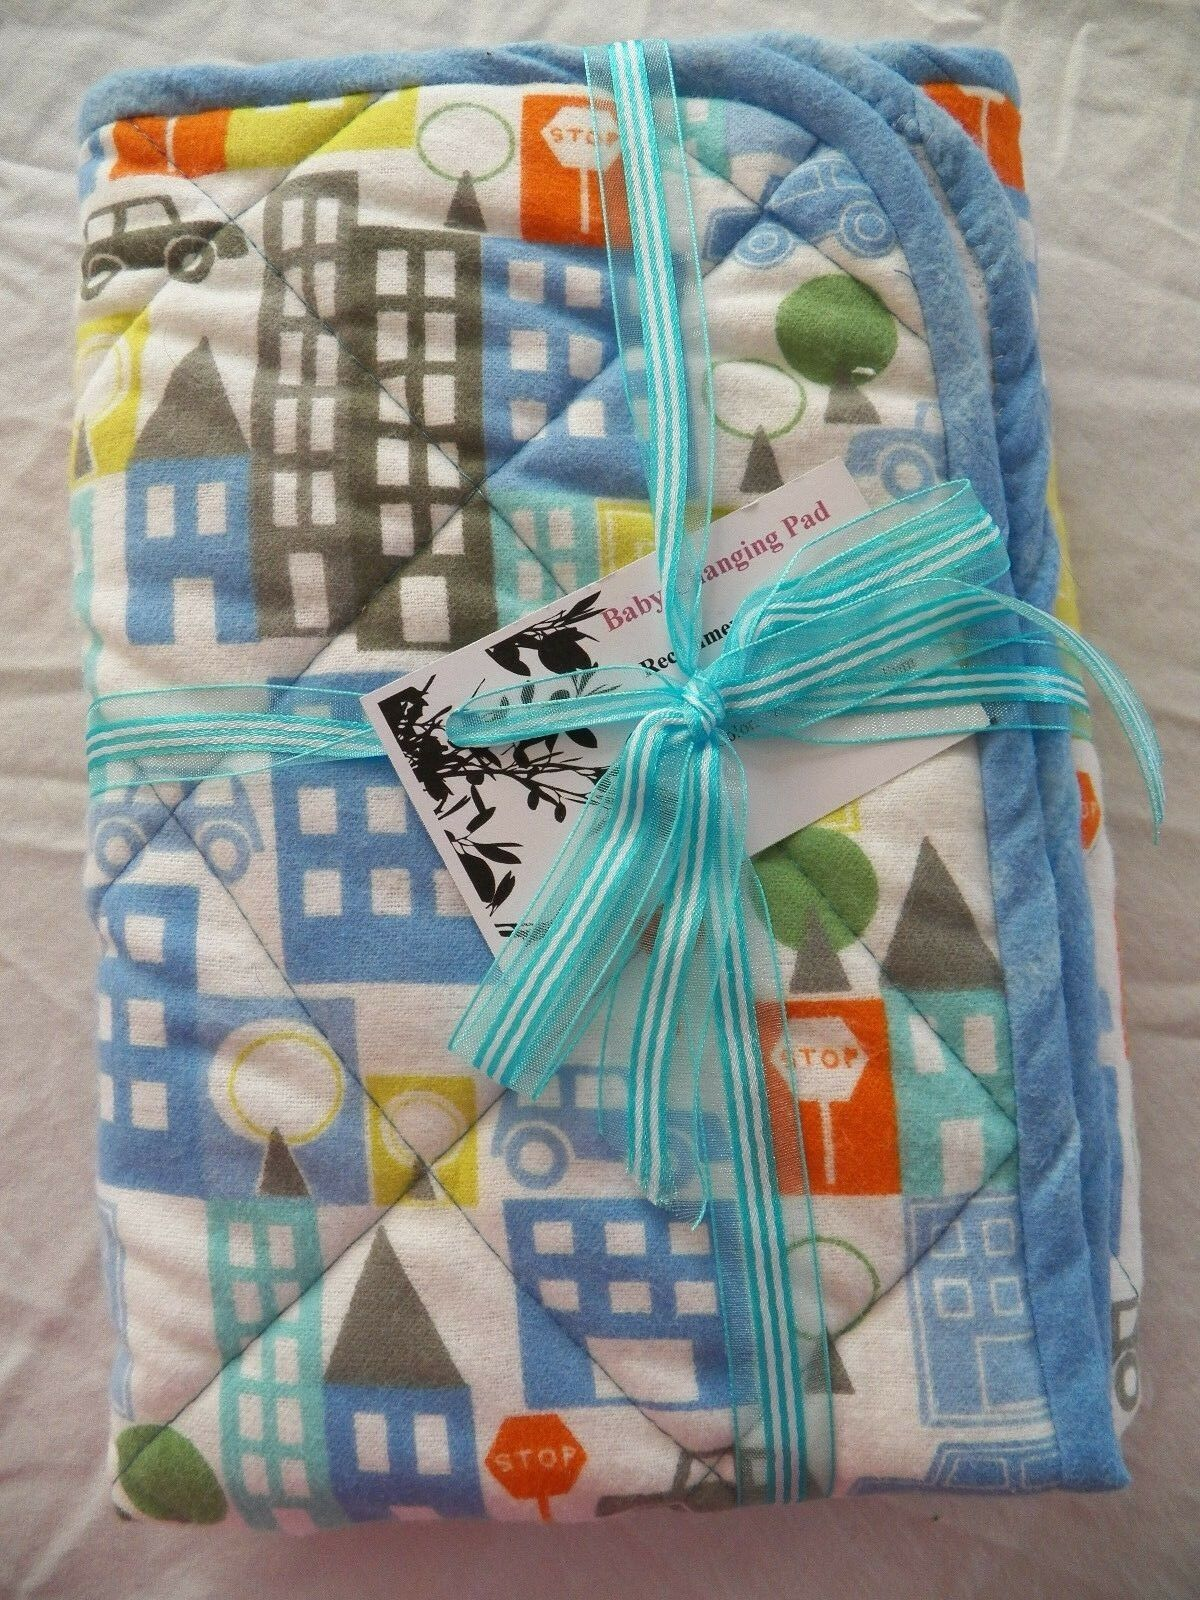 BABY CHANGING PAD Portable Diaper Travel Mat Cotton Washable Padded Handmade NEW 19